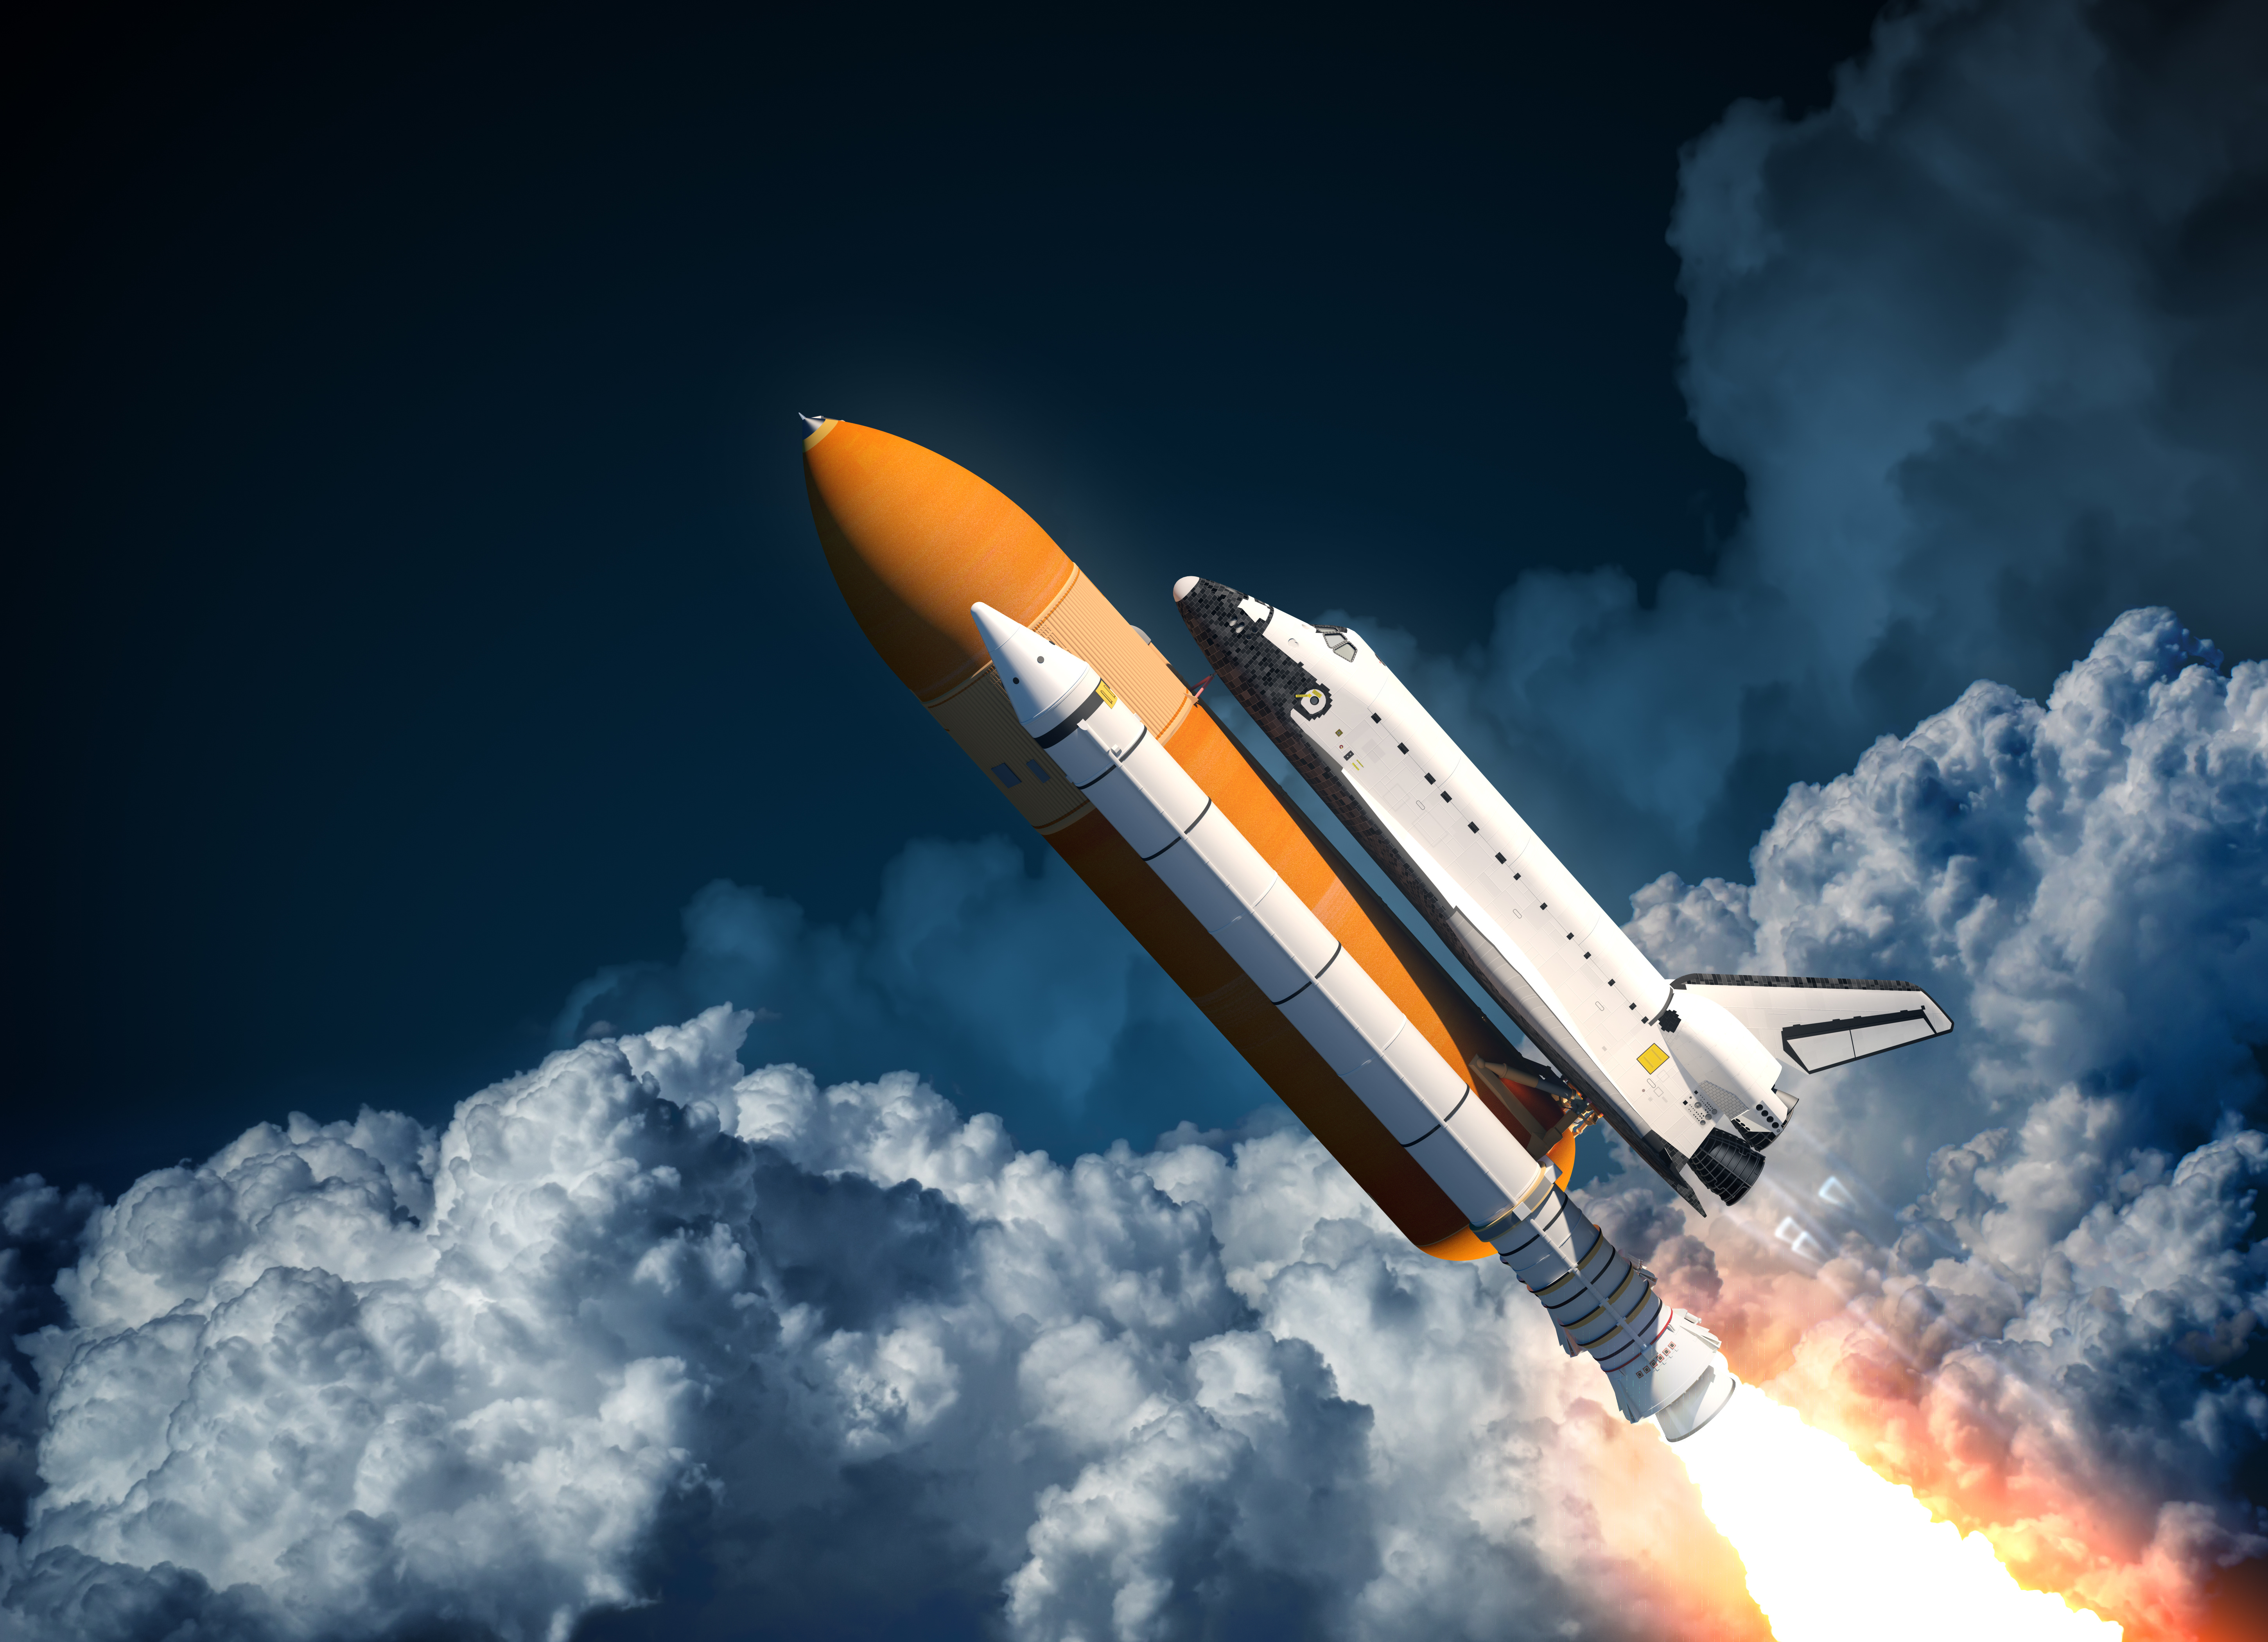 Vehicles Space Shuttle 5800x4200